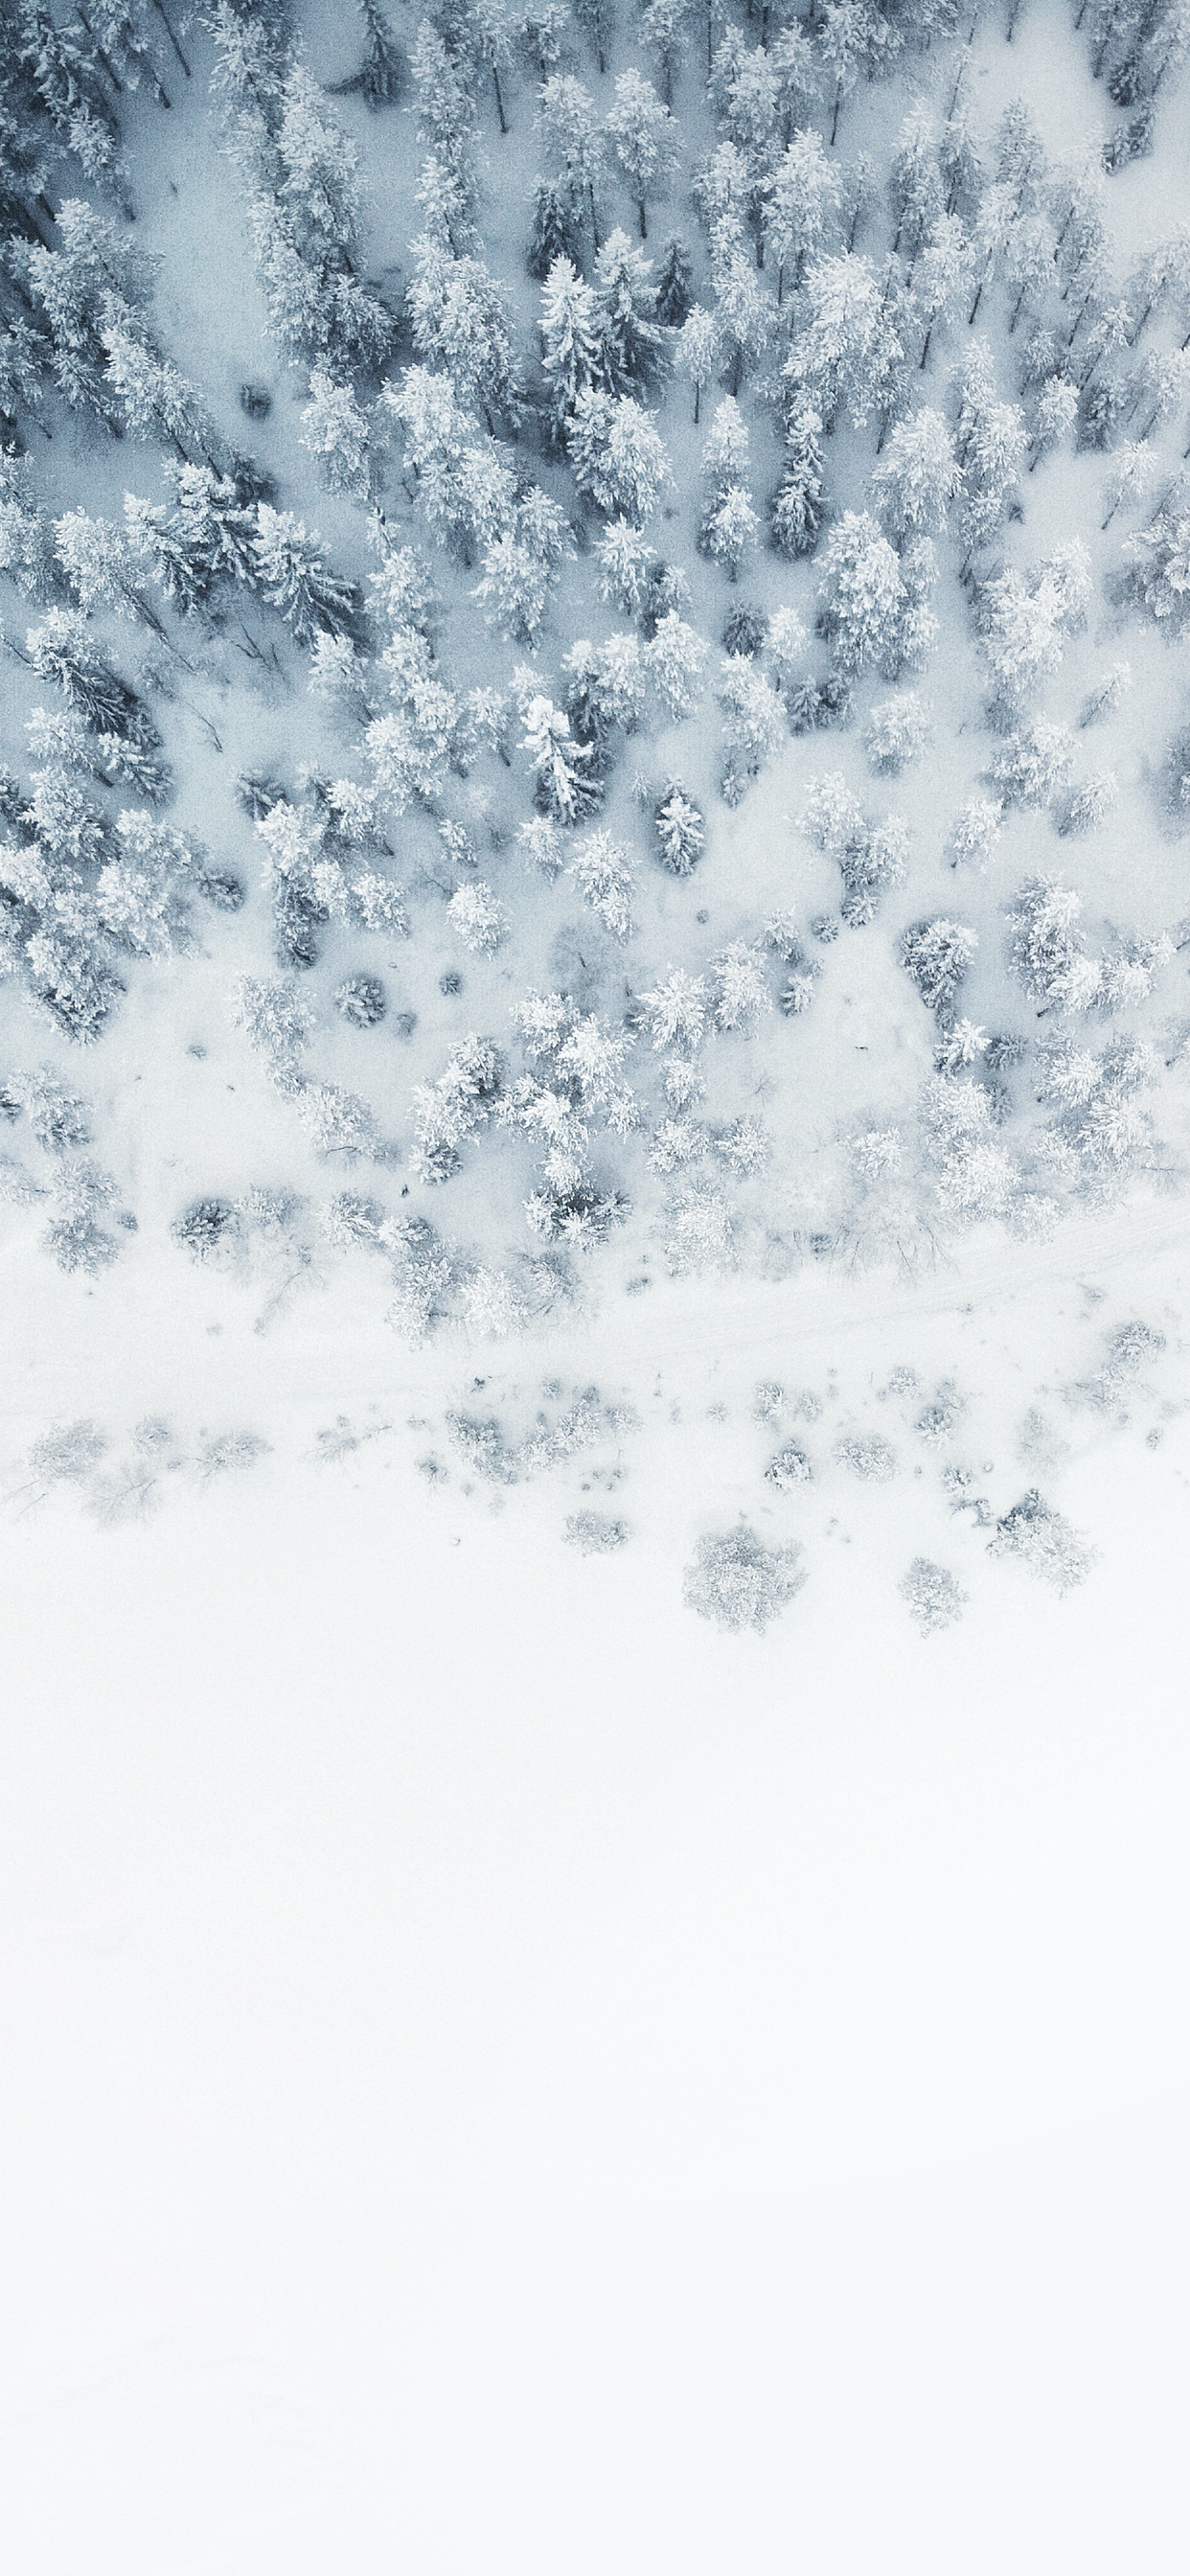 The Beginning Of Winter Wallpapers For Iphone